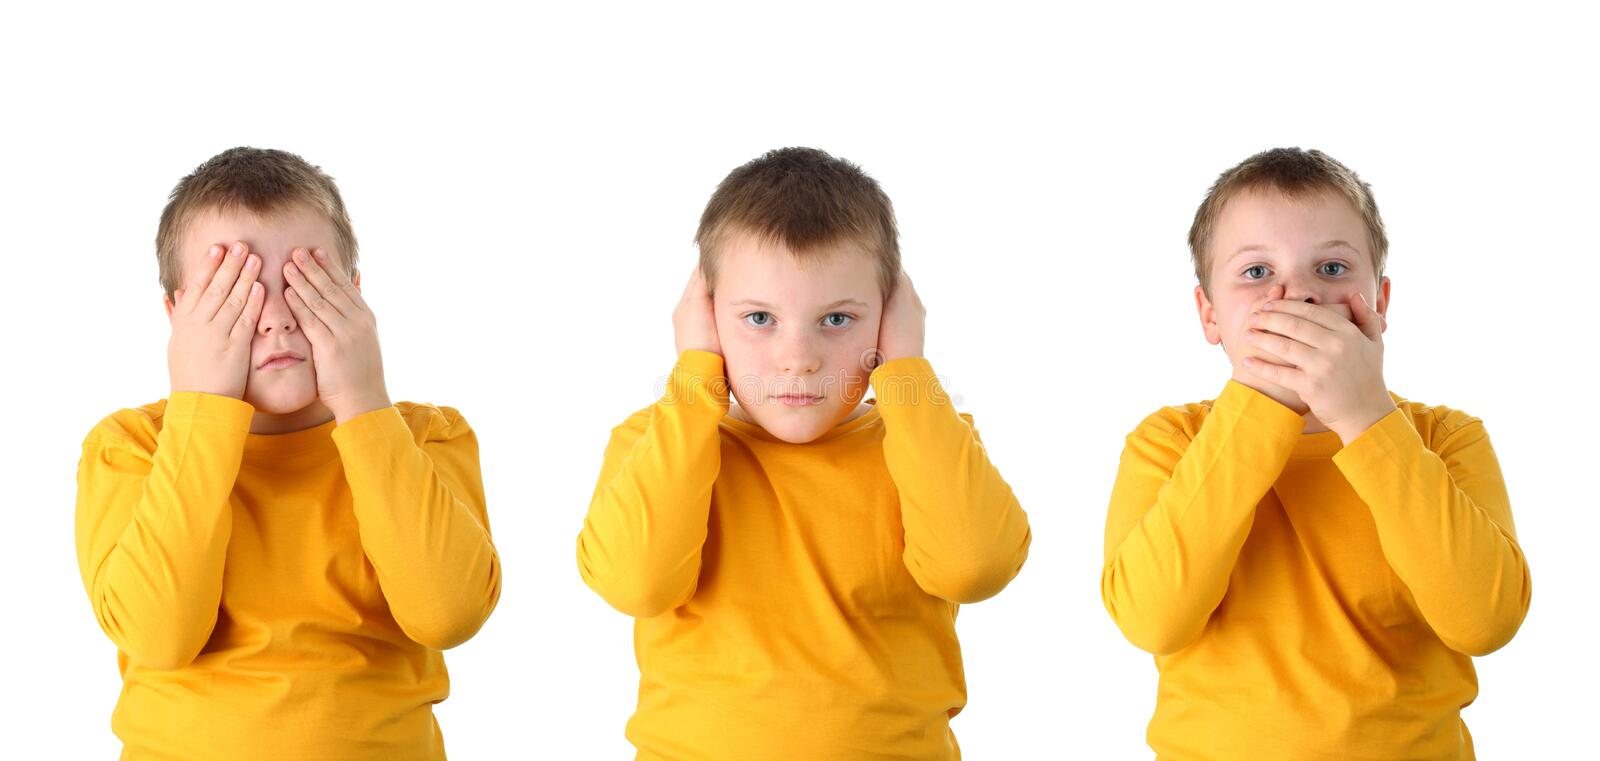 Download See No Evil Hear No Evil Speak No Evil Isolated Stock Photo - Image: 16434468